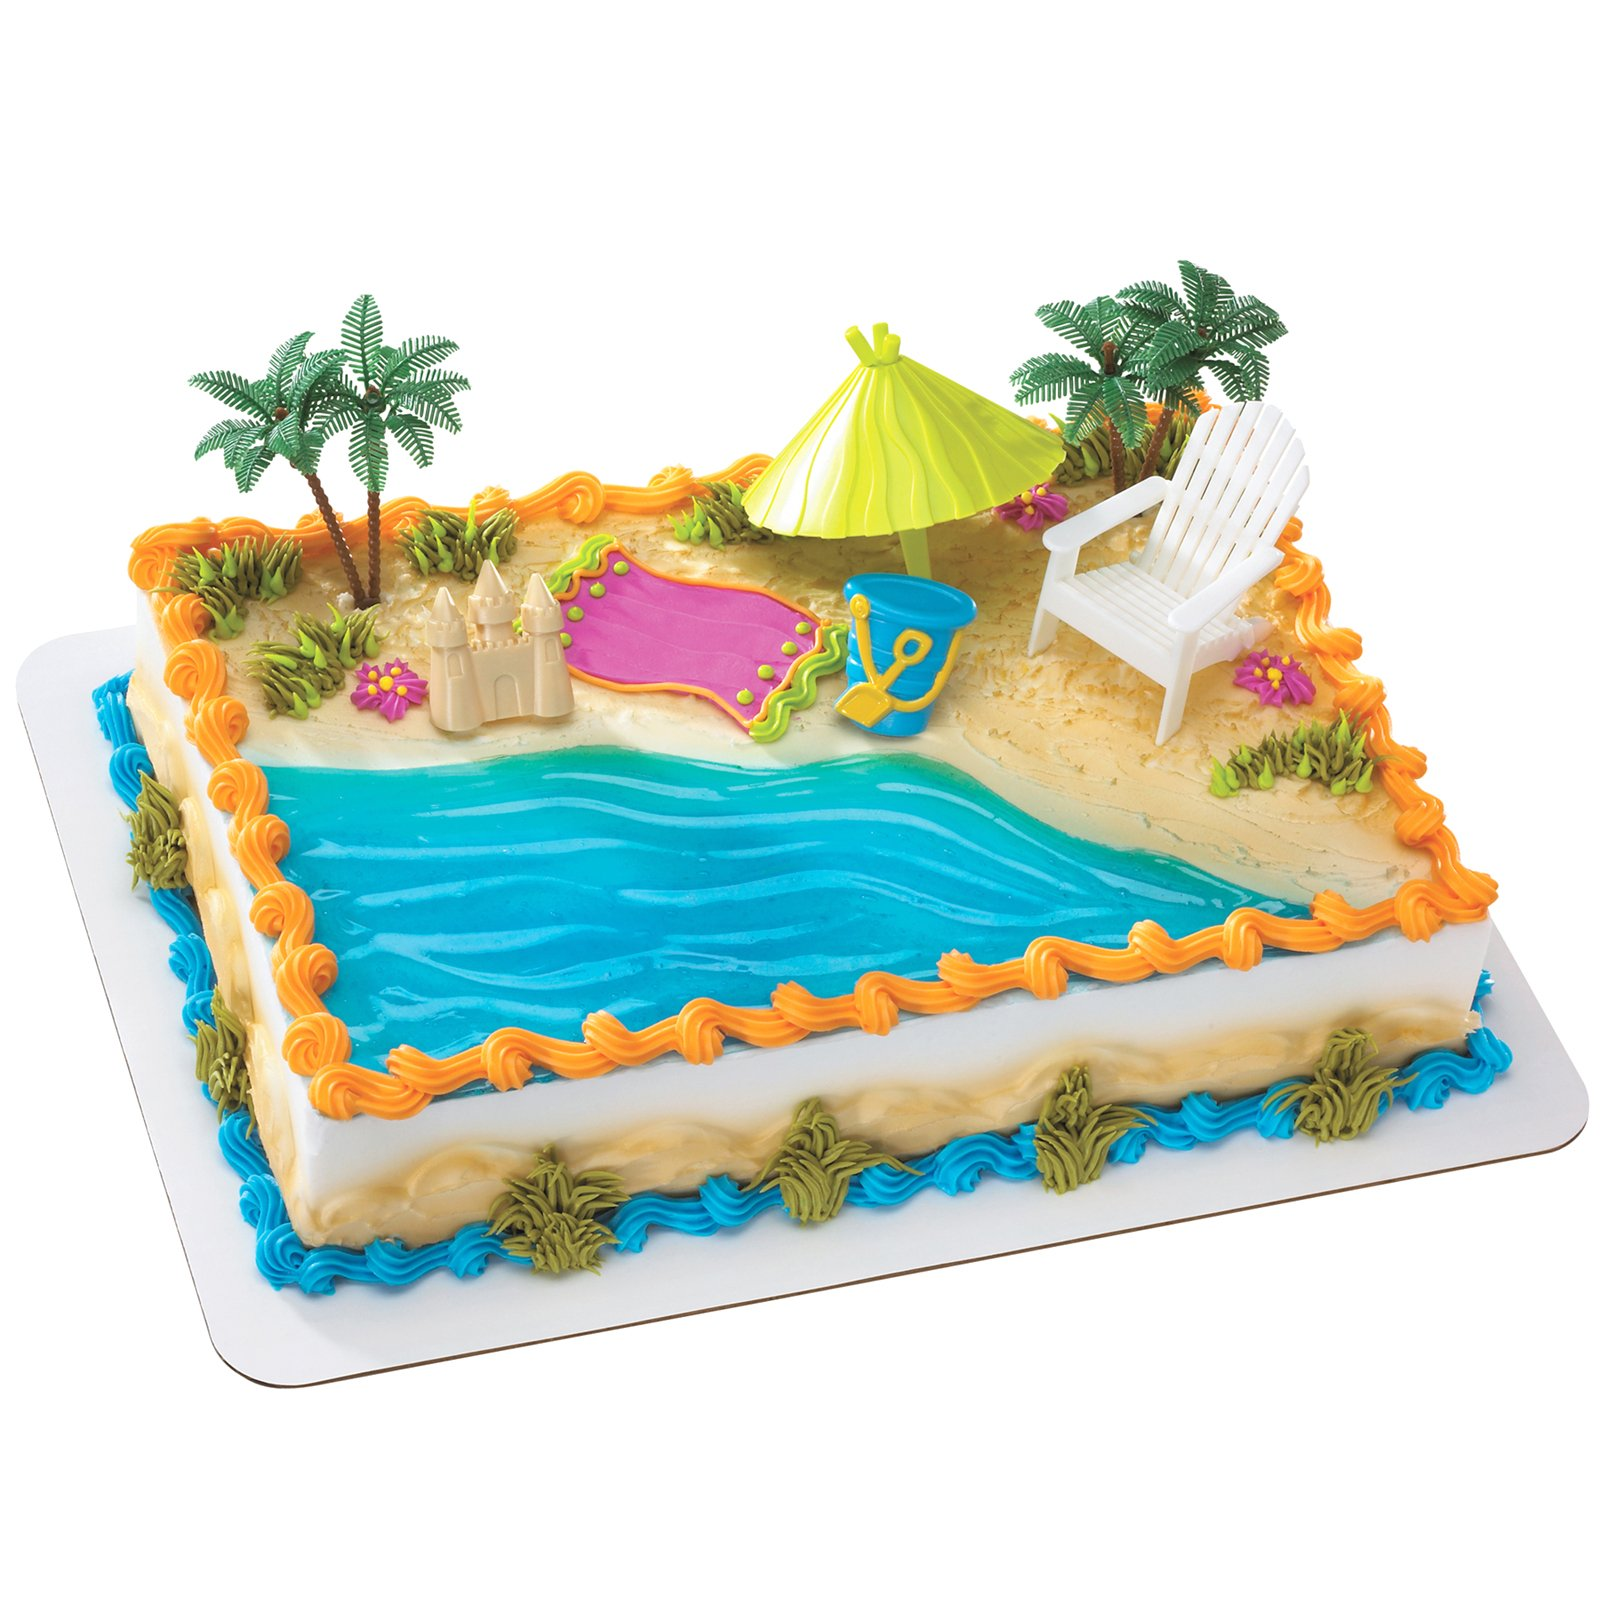 Celebrate Summer Birthdays with Birthdayexpress.com